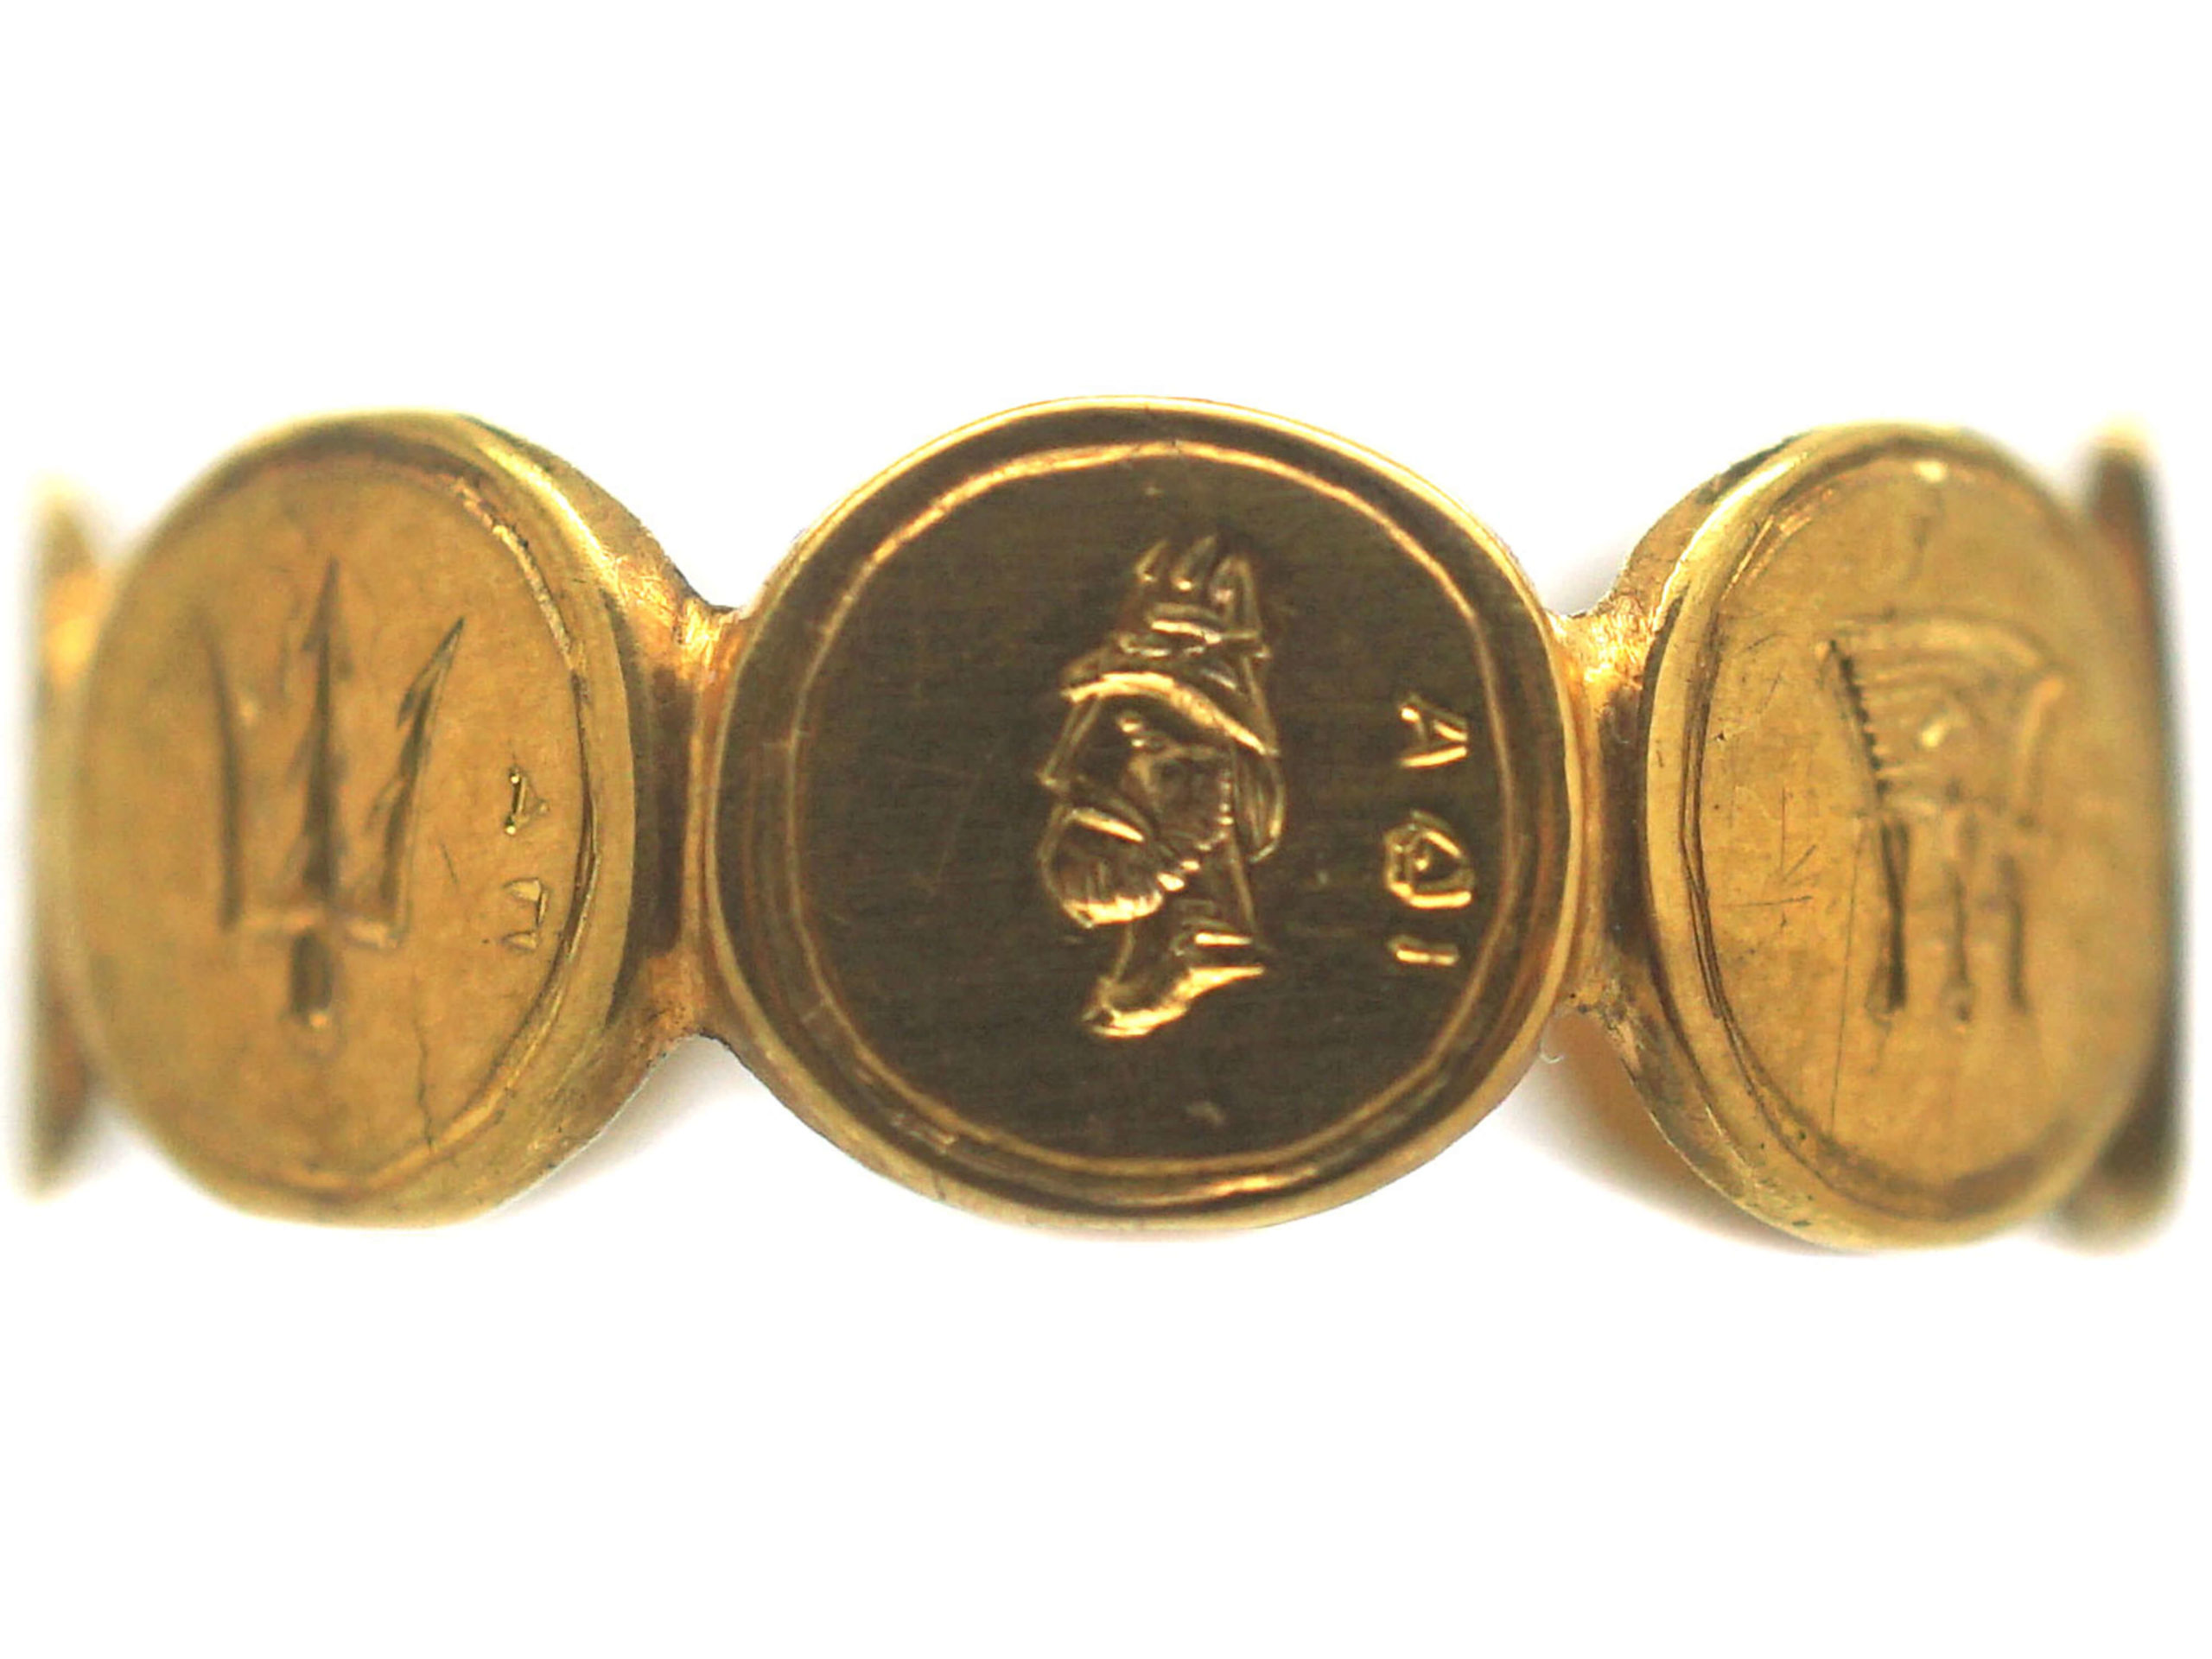 Georgian 18ct Gold Ring with Emblems of the Ionian Islands